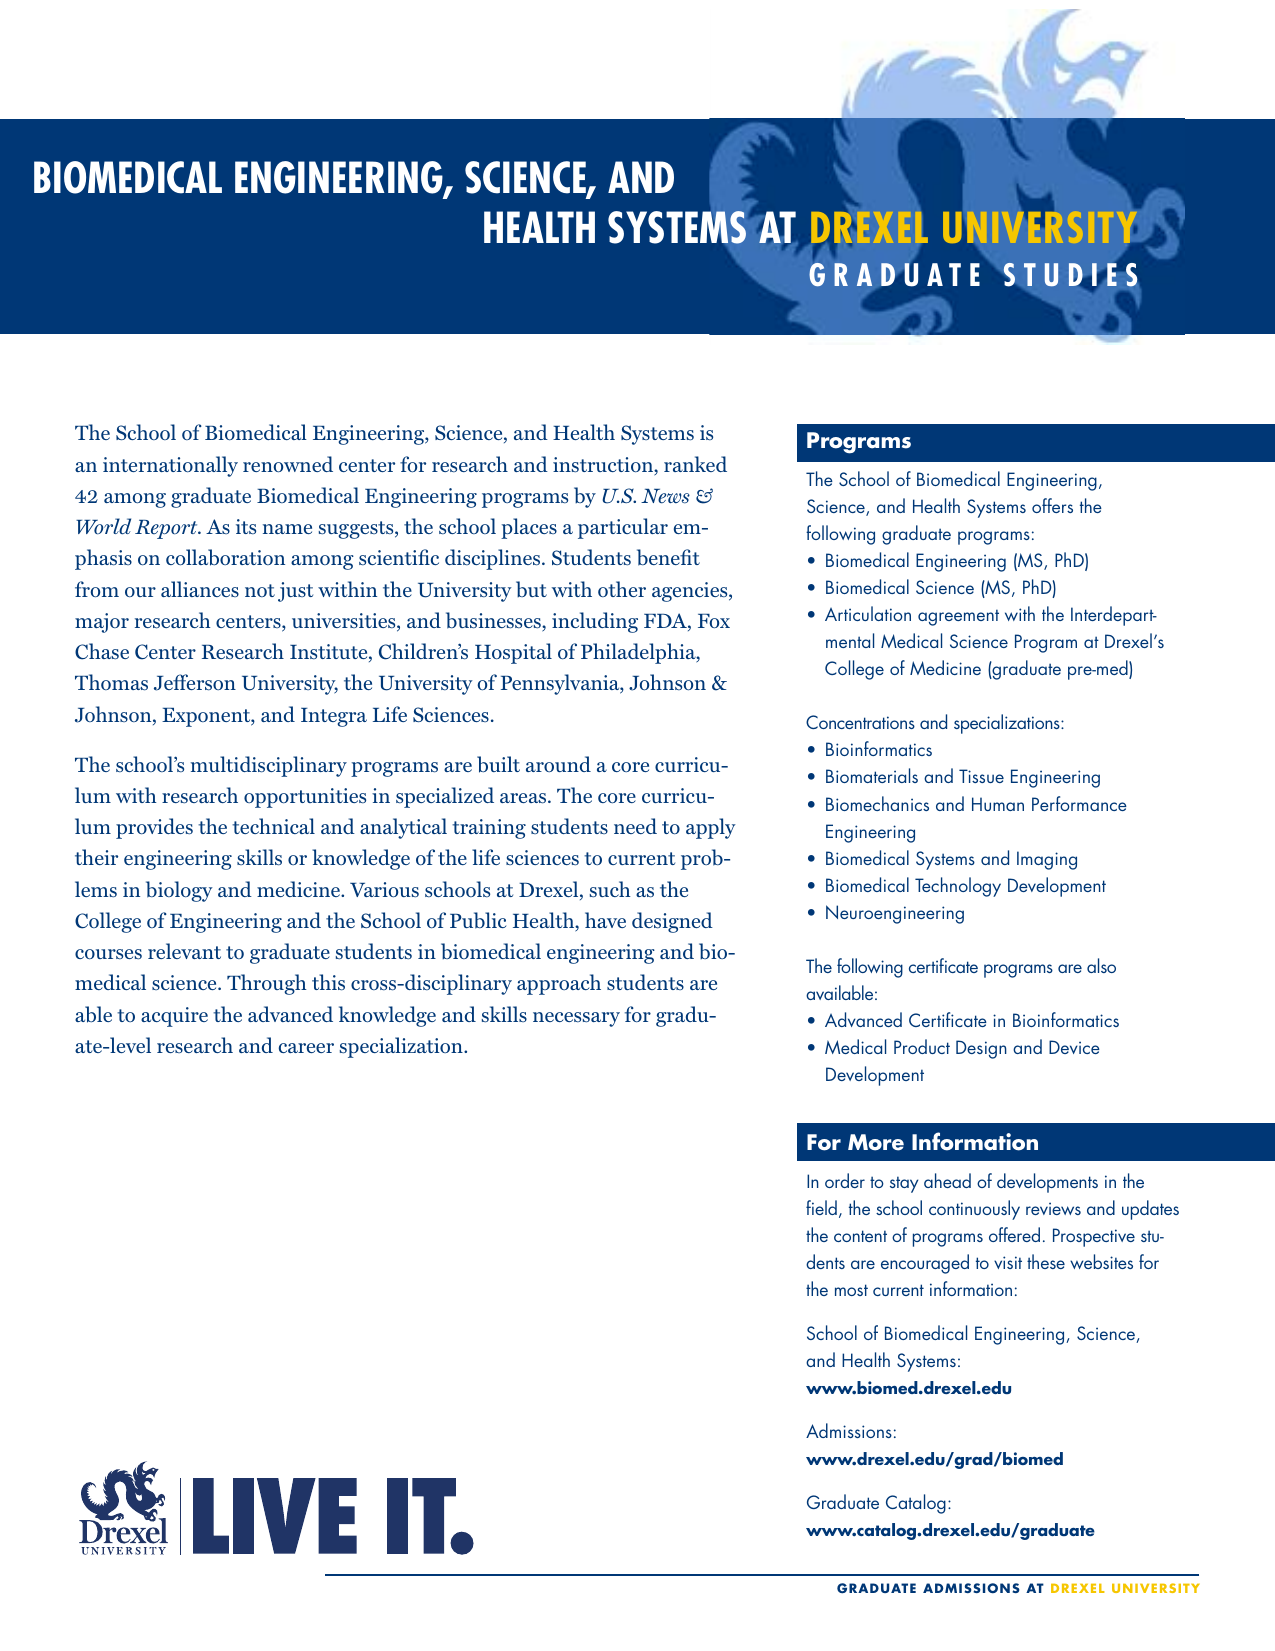 BIOMEDICAL ENGINEERING, SCIENCE, AND HEALTH SYSTEMS AT